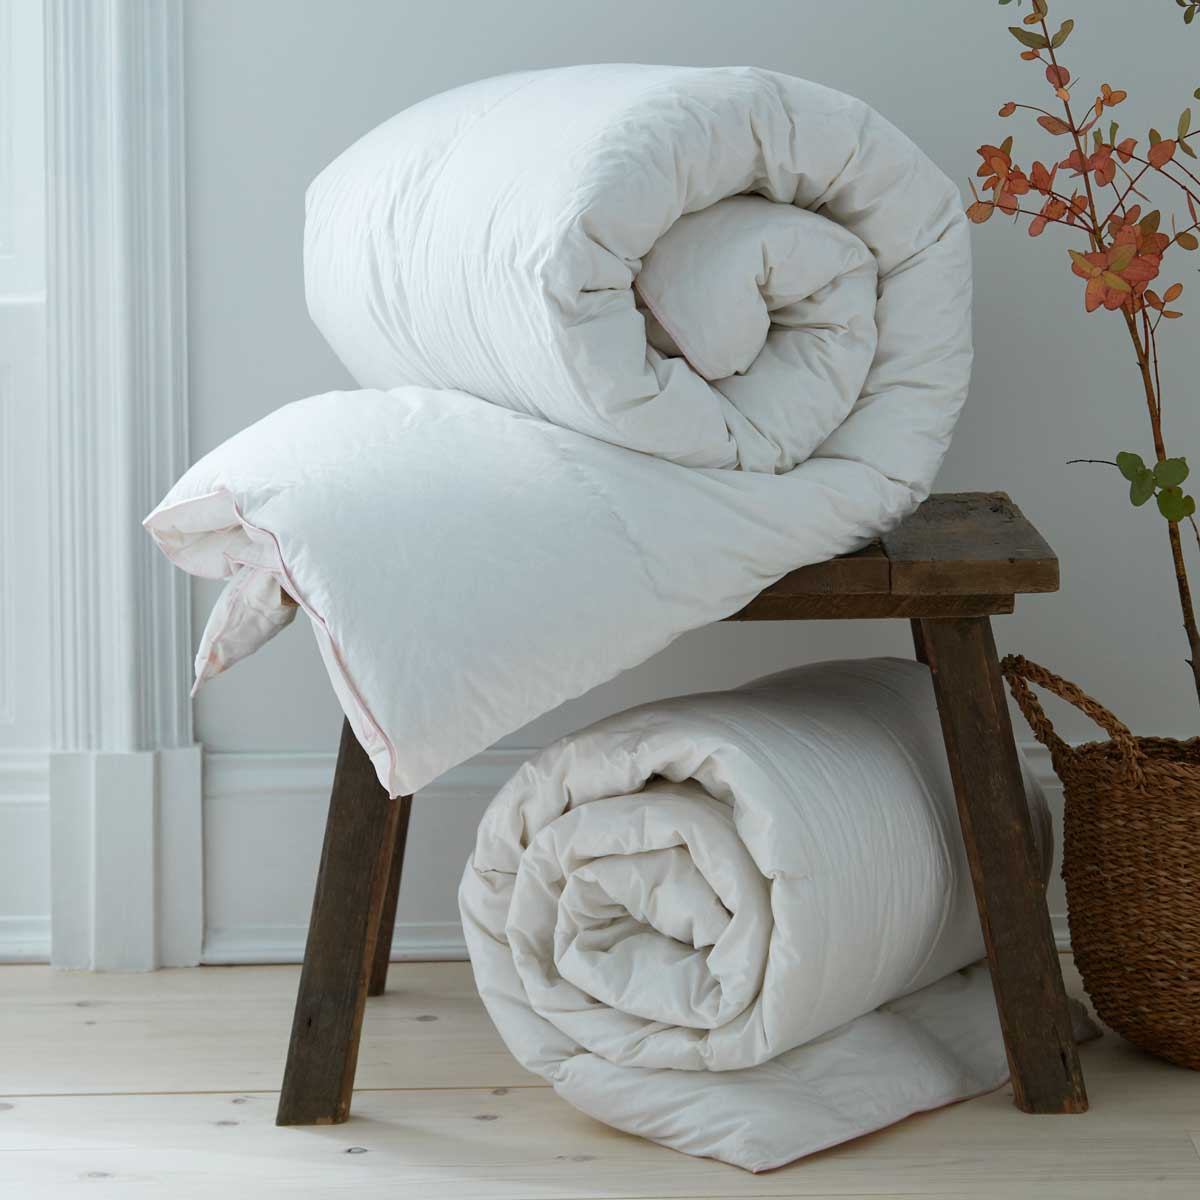 How to choose the right winter duvet